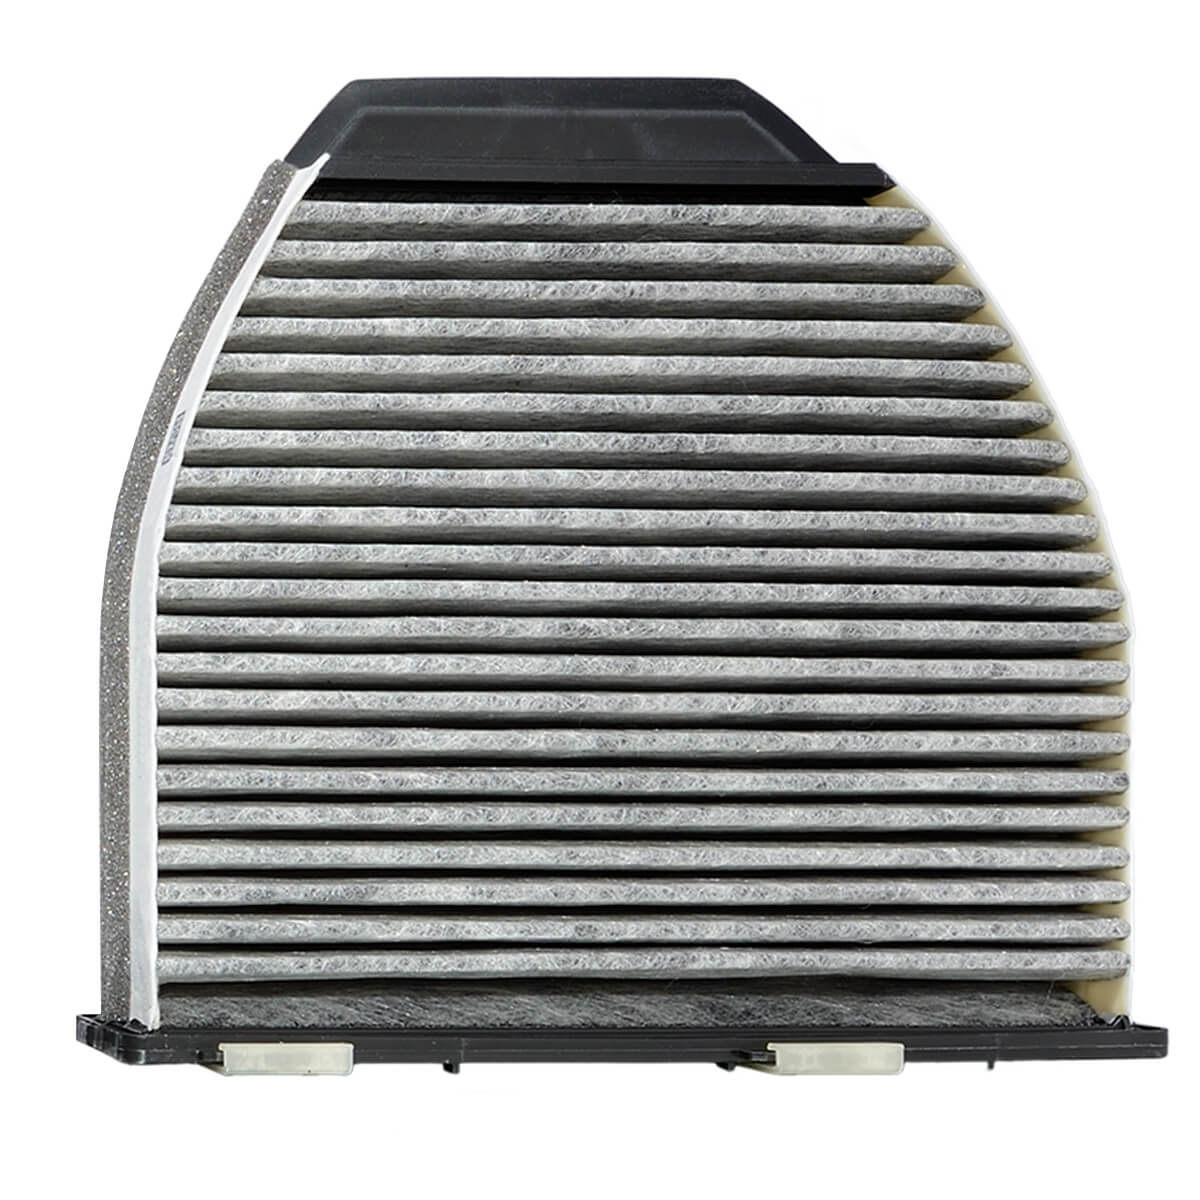 CITROEN BERLINGO MULTISPACE Cabin Filter